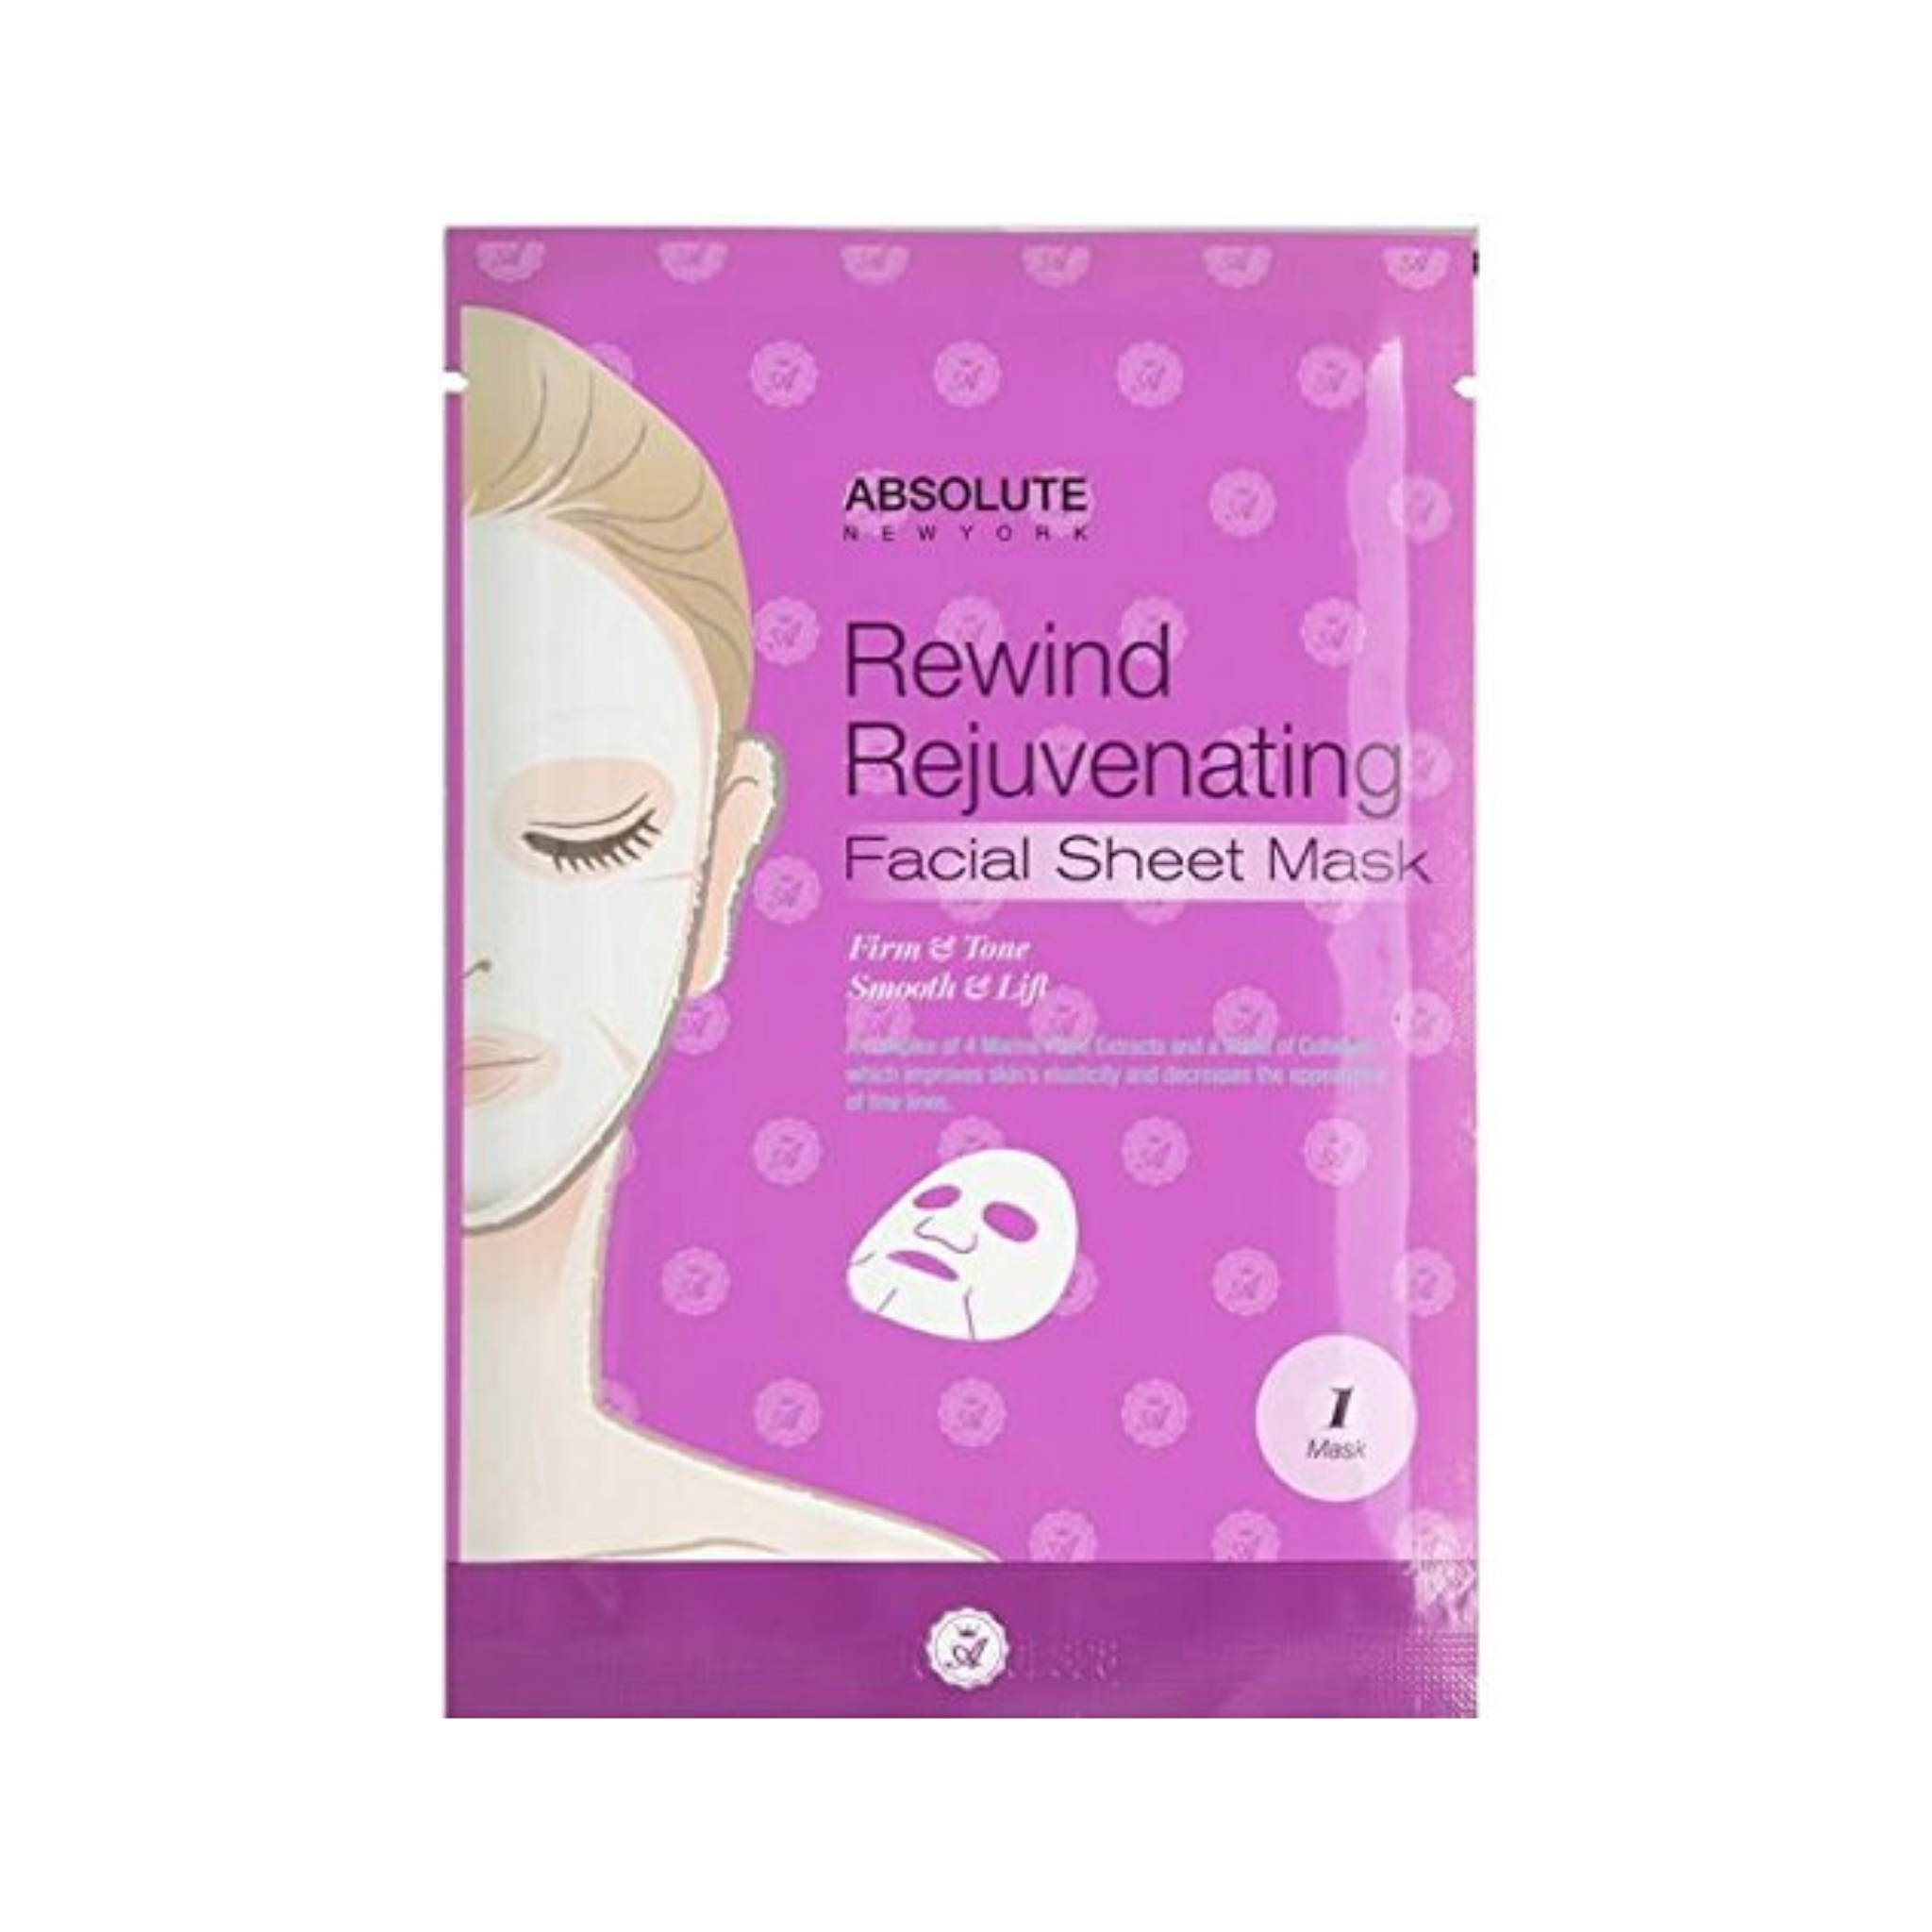 REWIND REJUVENATING FACIAL SHEET MASK